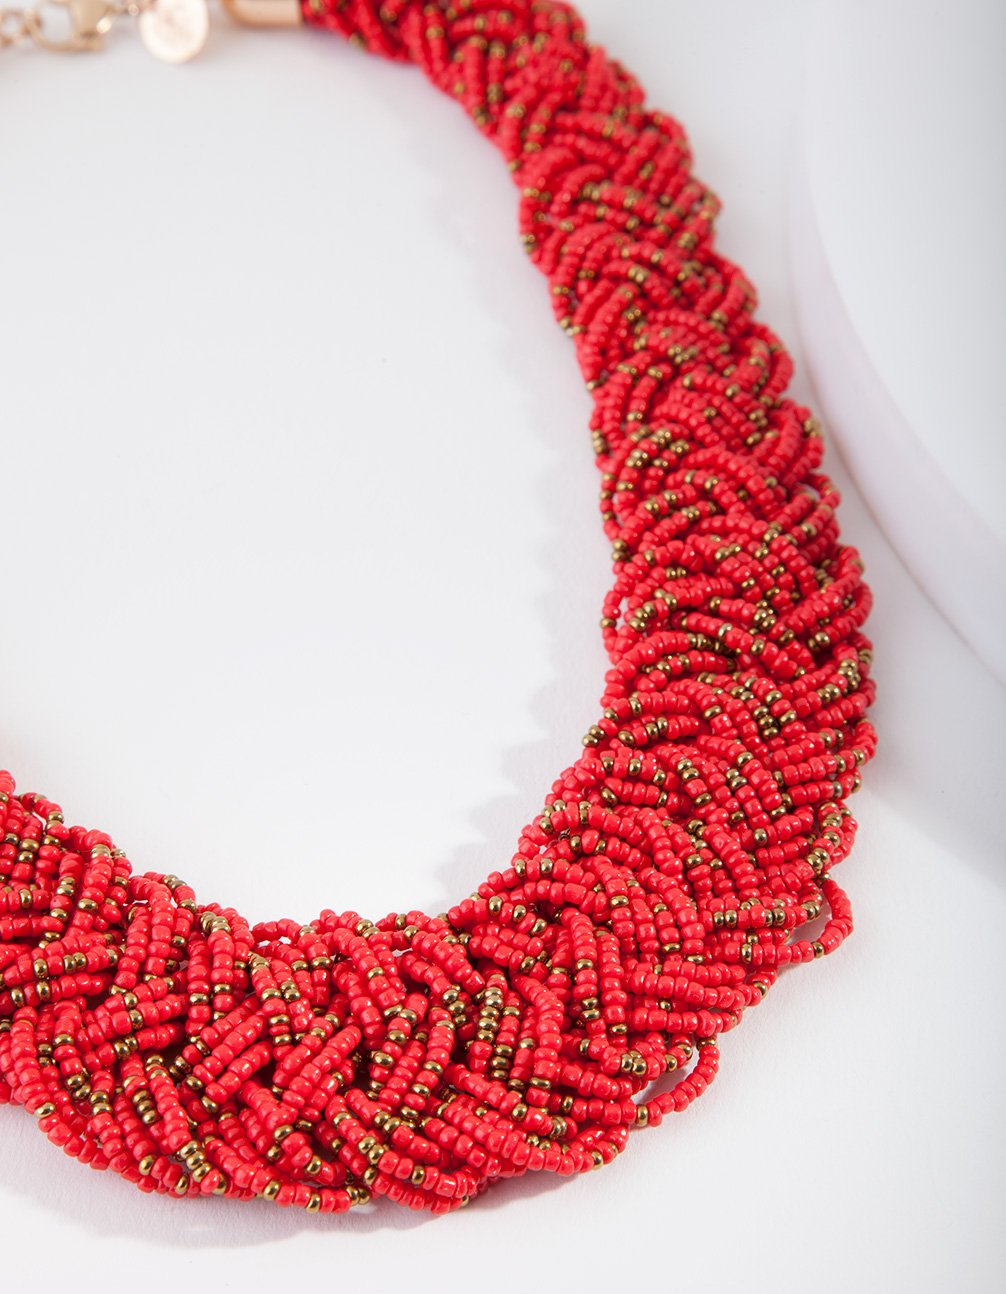 Bead Flat Plaited Necklace